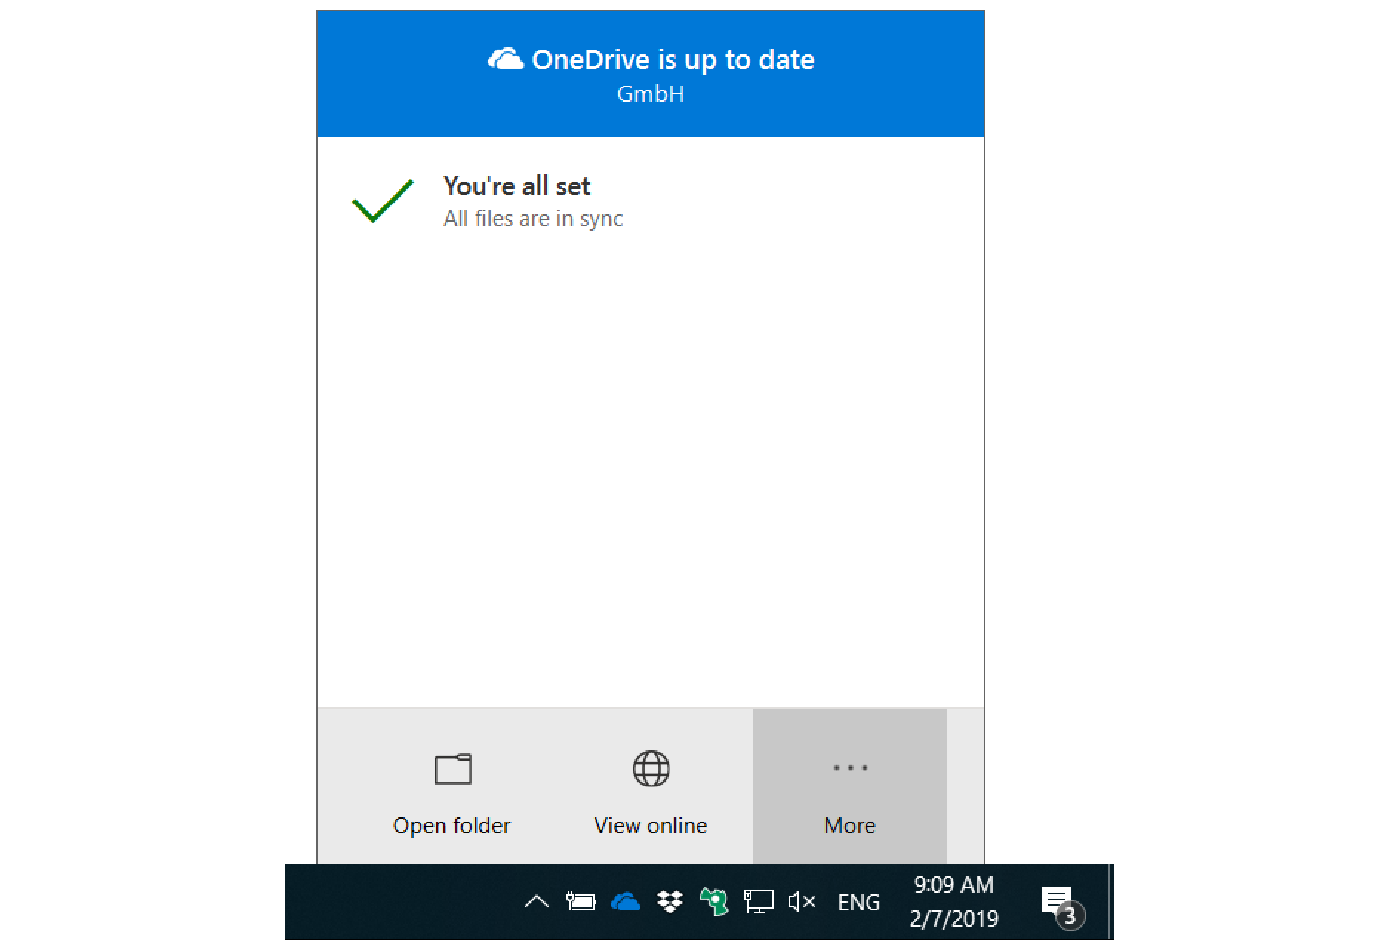 OneDrive for Business client settings